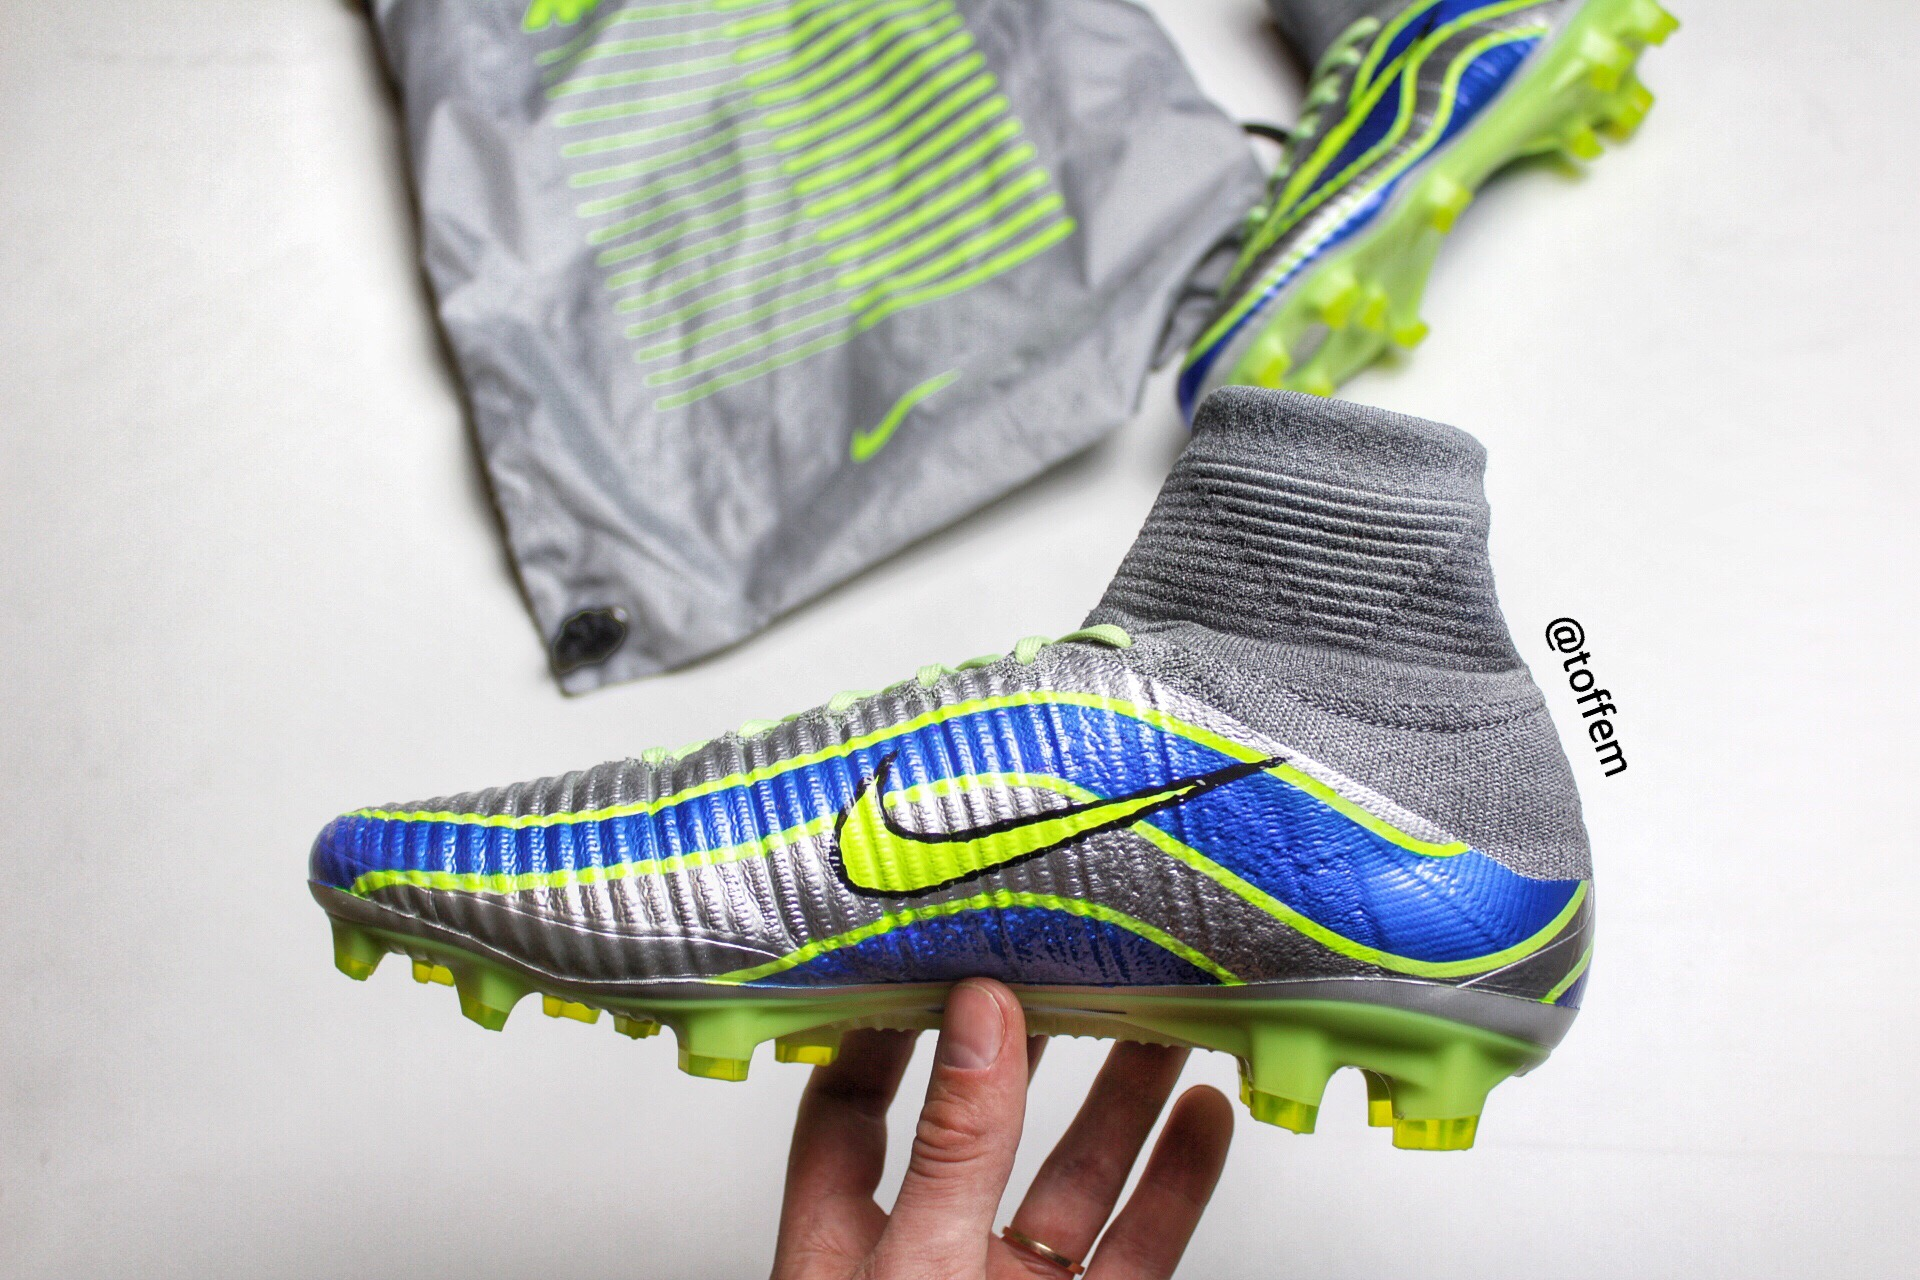 """953365ea7 Nike Mercurial Superfly V """"1998"""". Honestly this project is one of the  coolest thing this year! I had planned to do this custome makeover since  early 2016."""